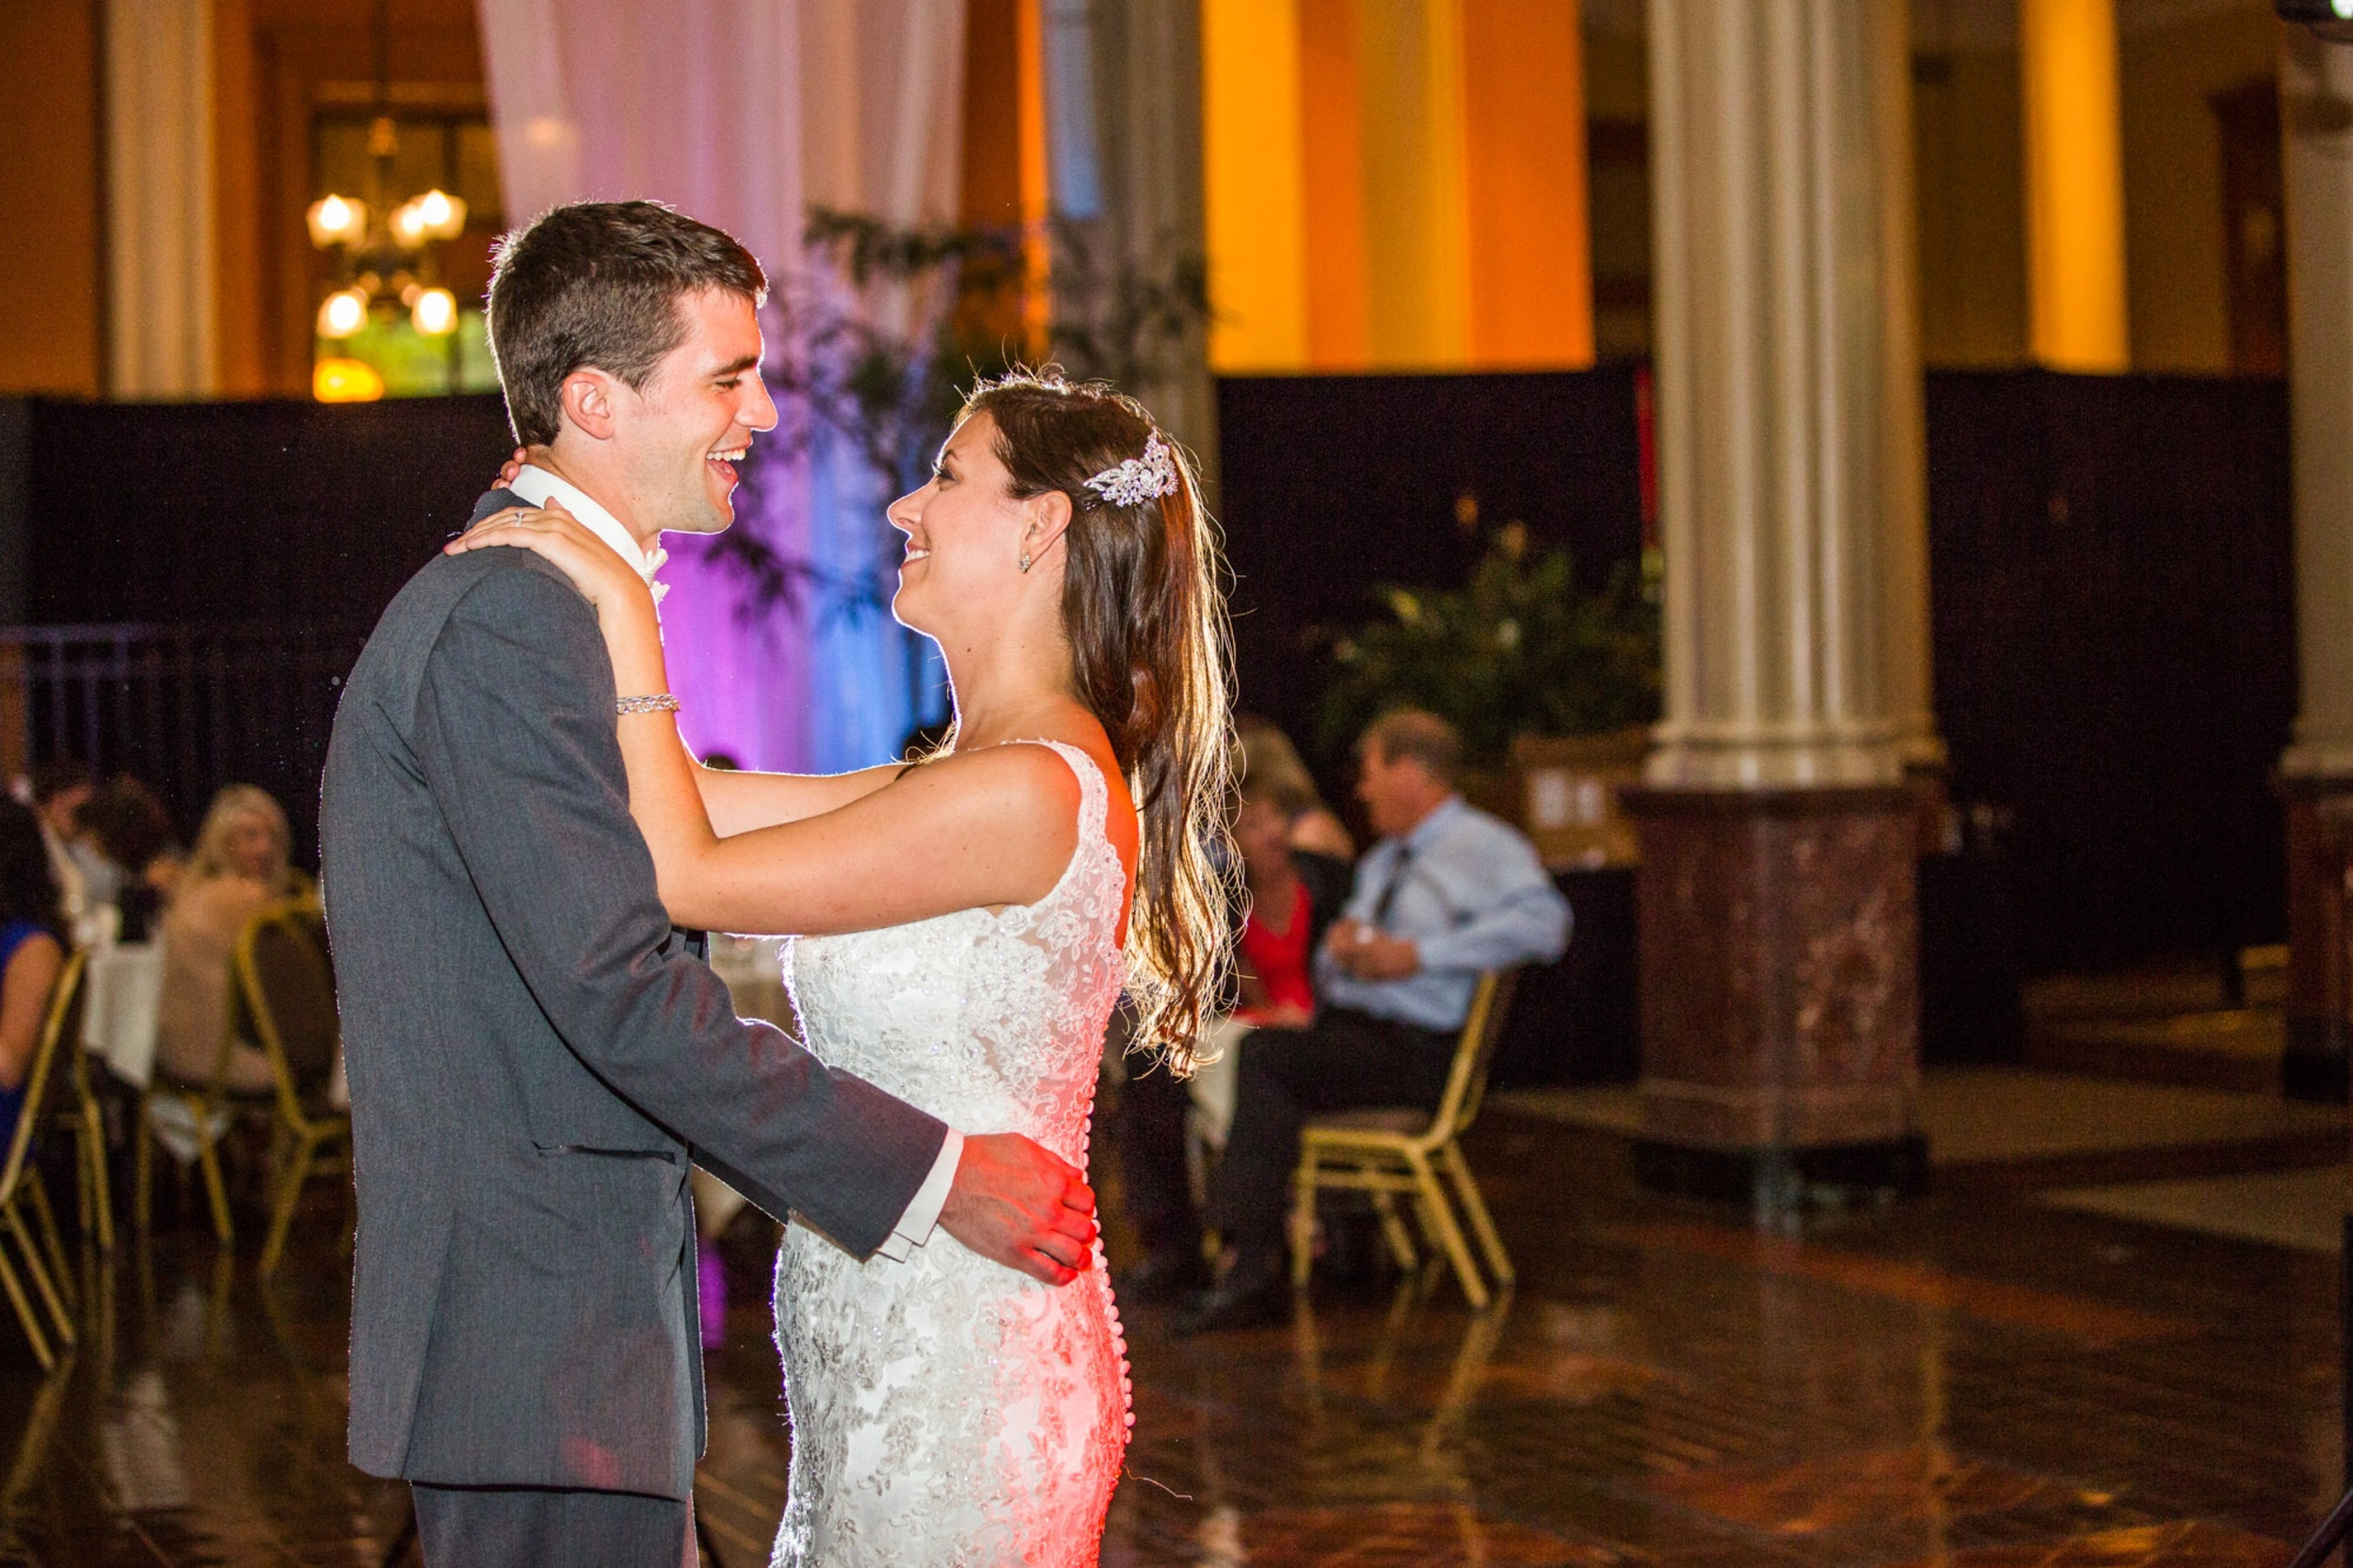 landmark center mn weddings twin cities .jpg